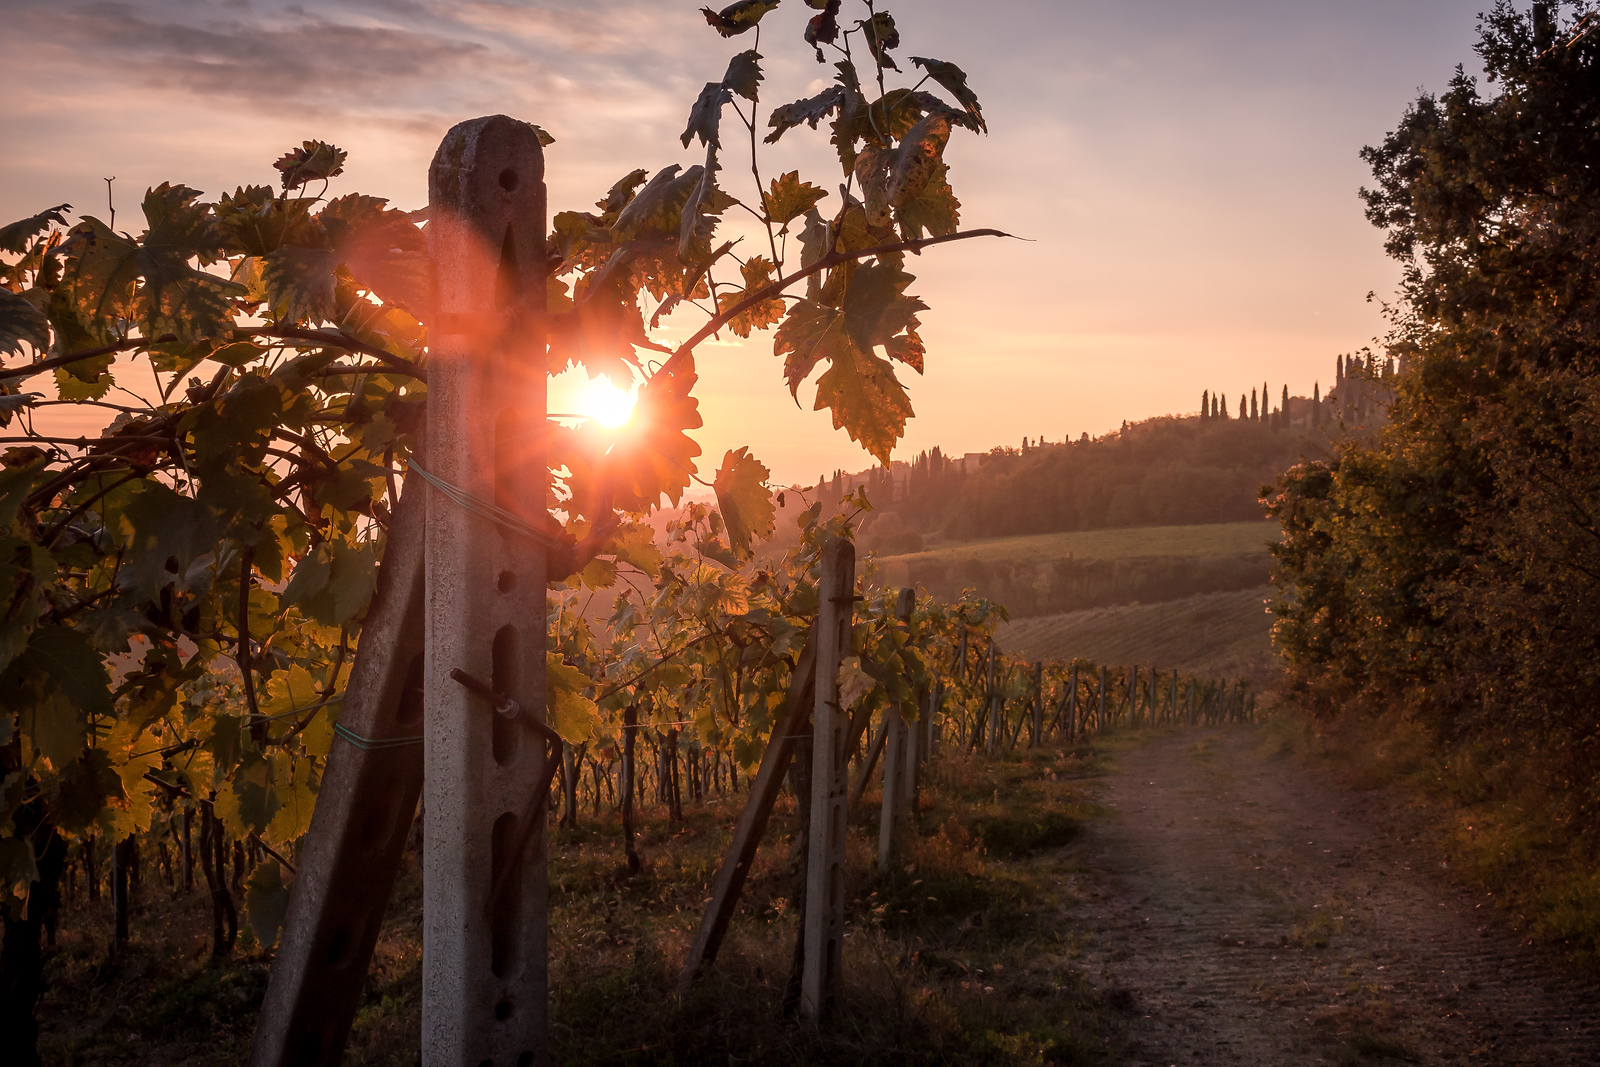 Sunrise on Tuscany Winefields